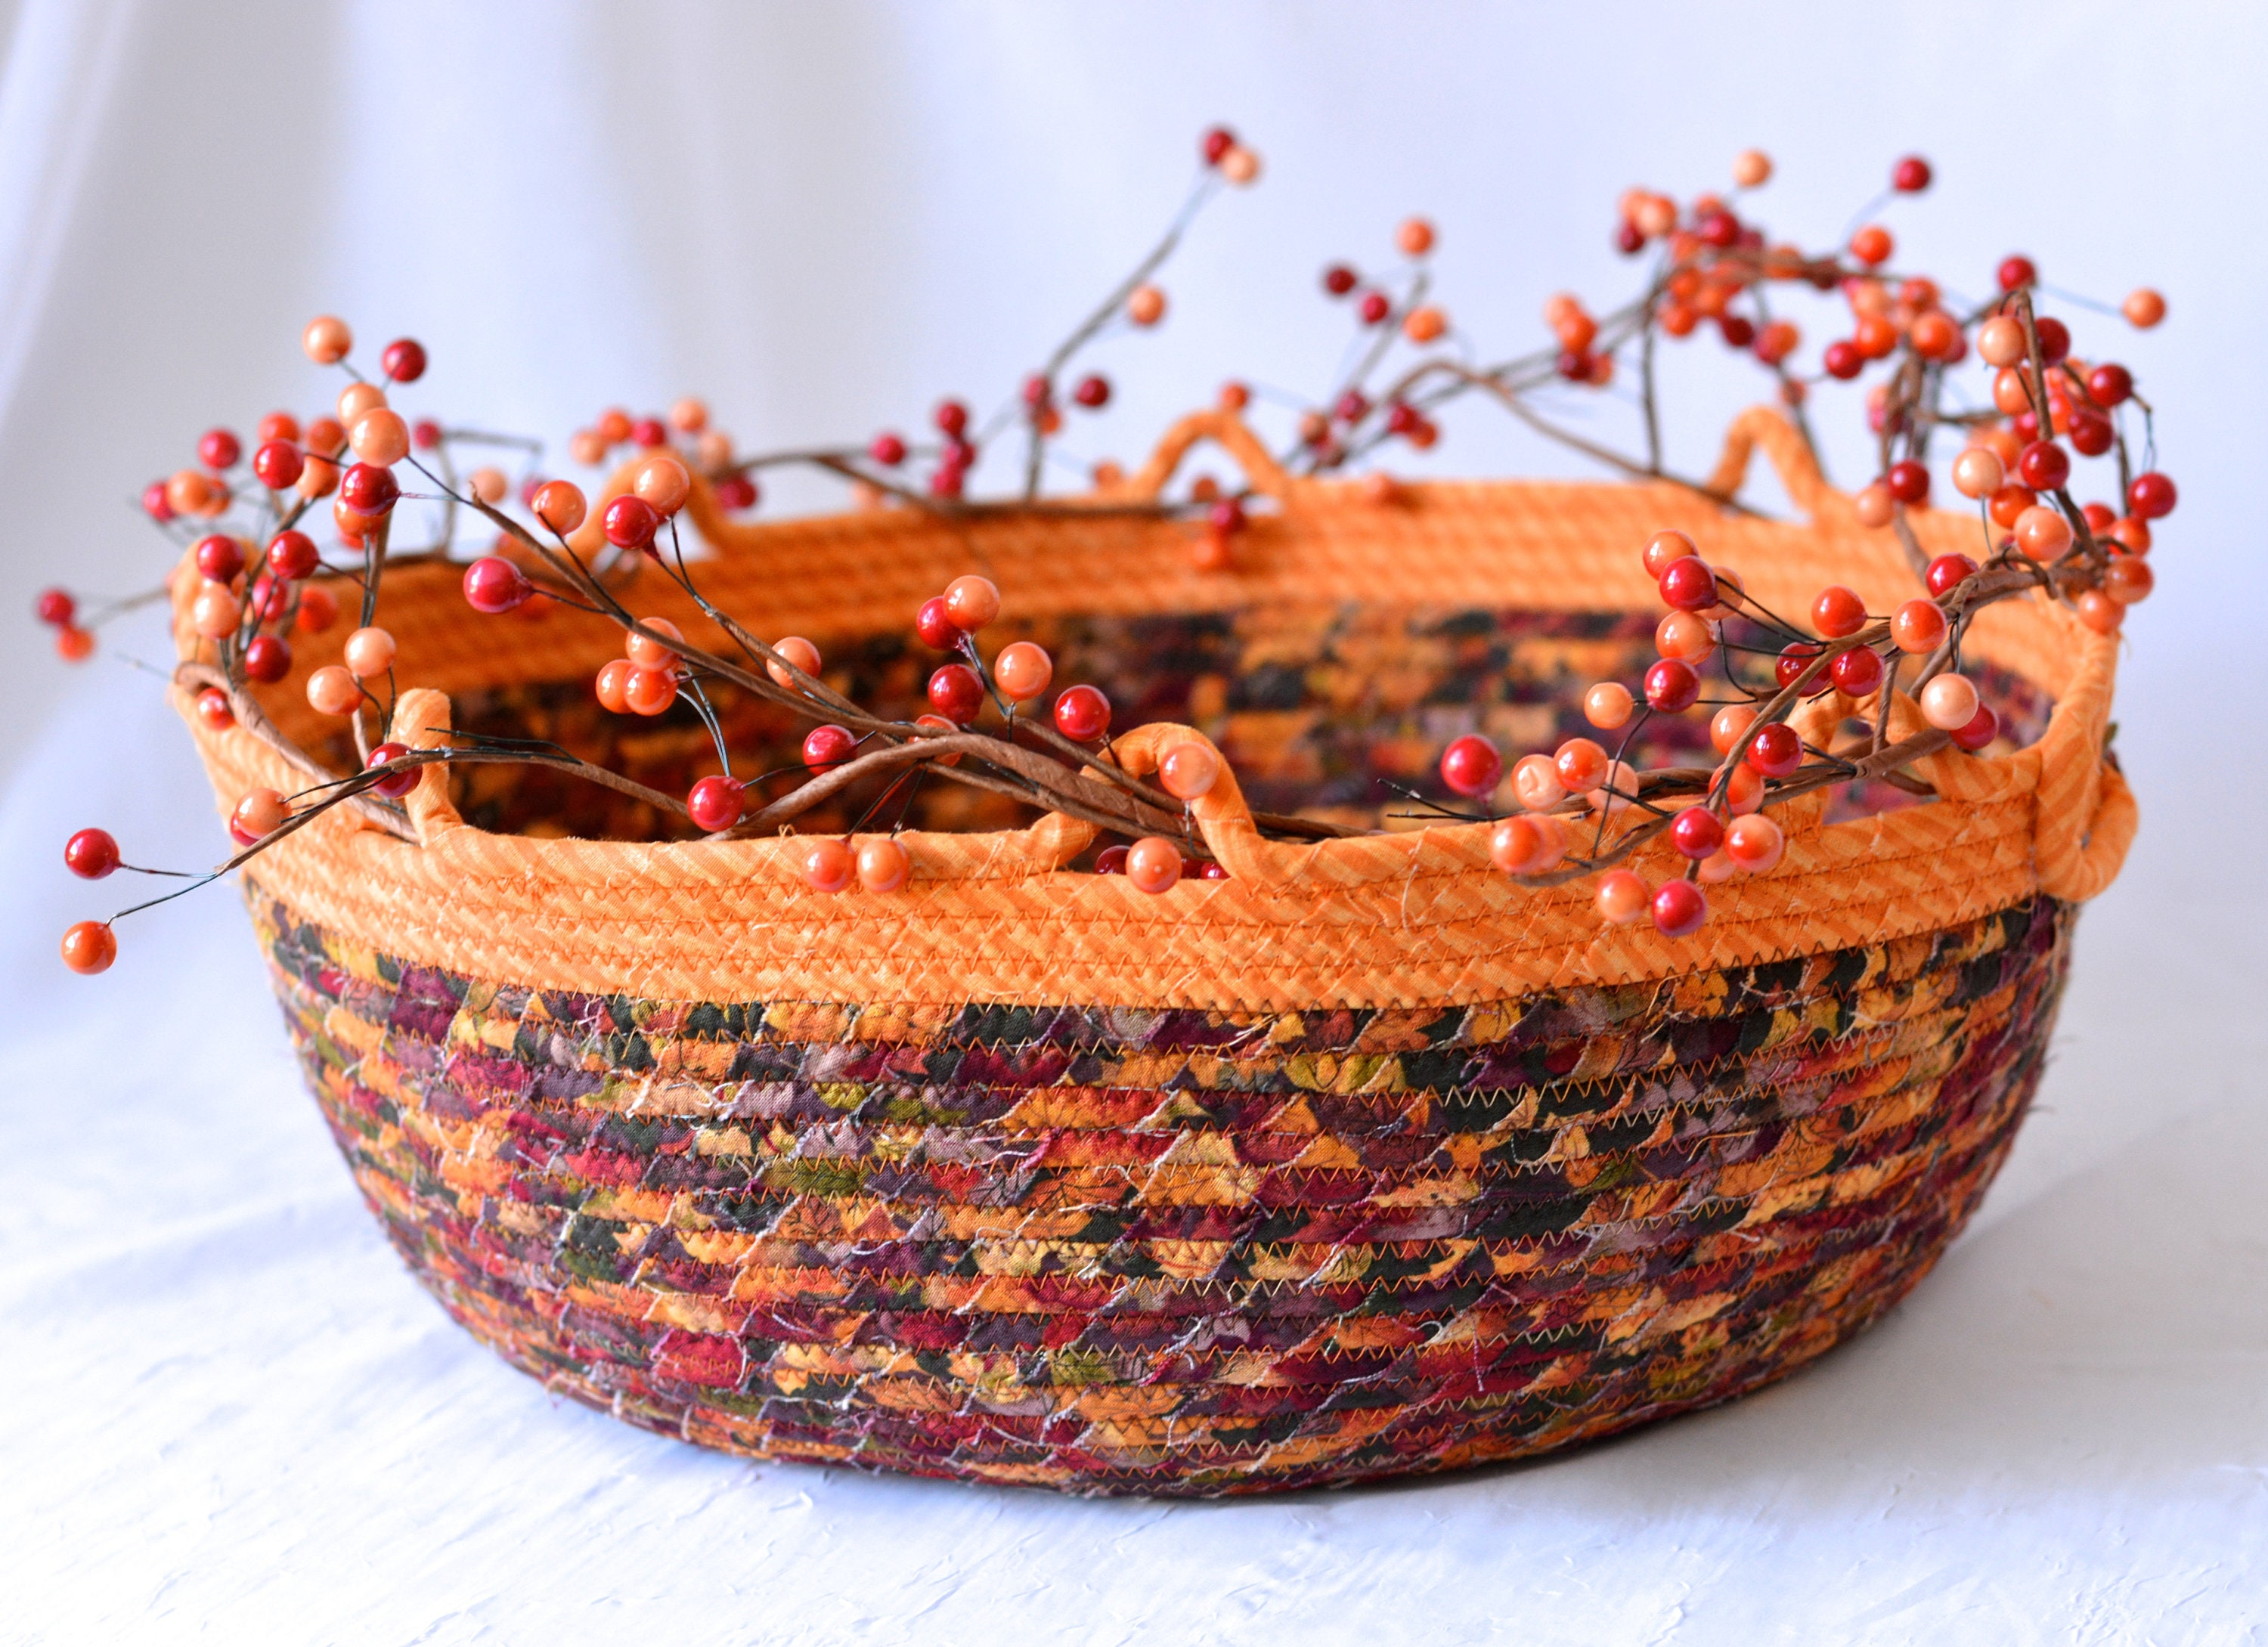 Fall Display Basket Tan Coiled Basket Country Gift Basket Napkin Holder Fall Leaves Table Centerpiece Fruit Bowl Bread Basket